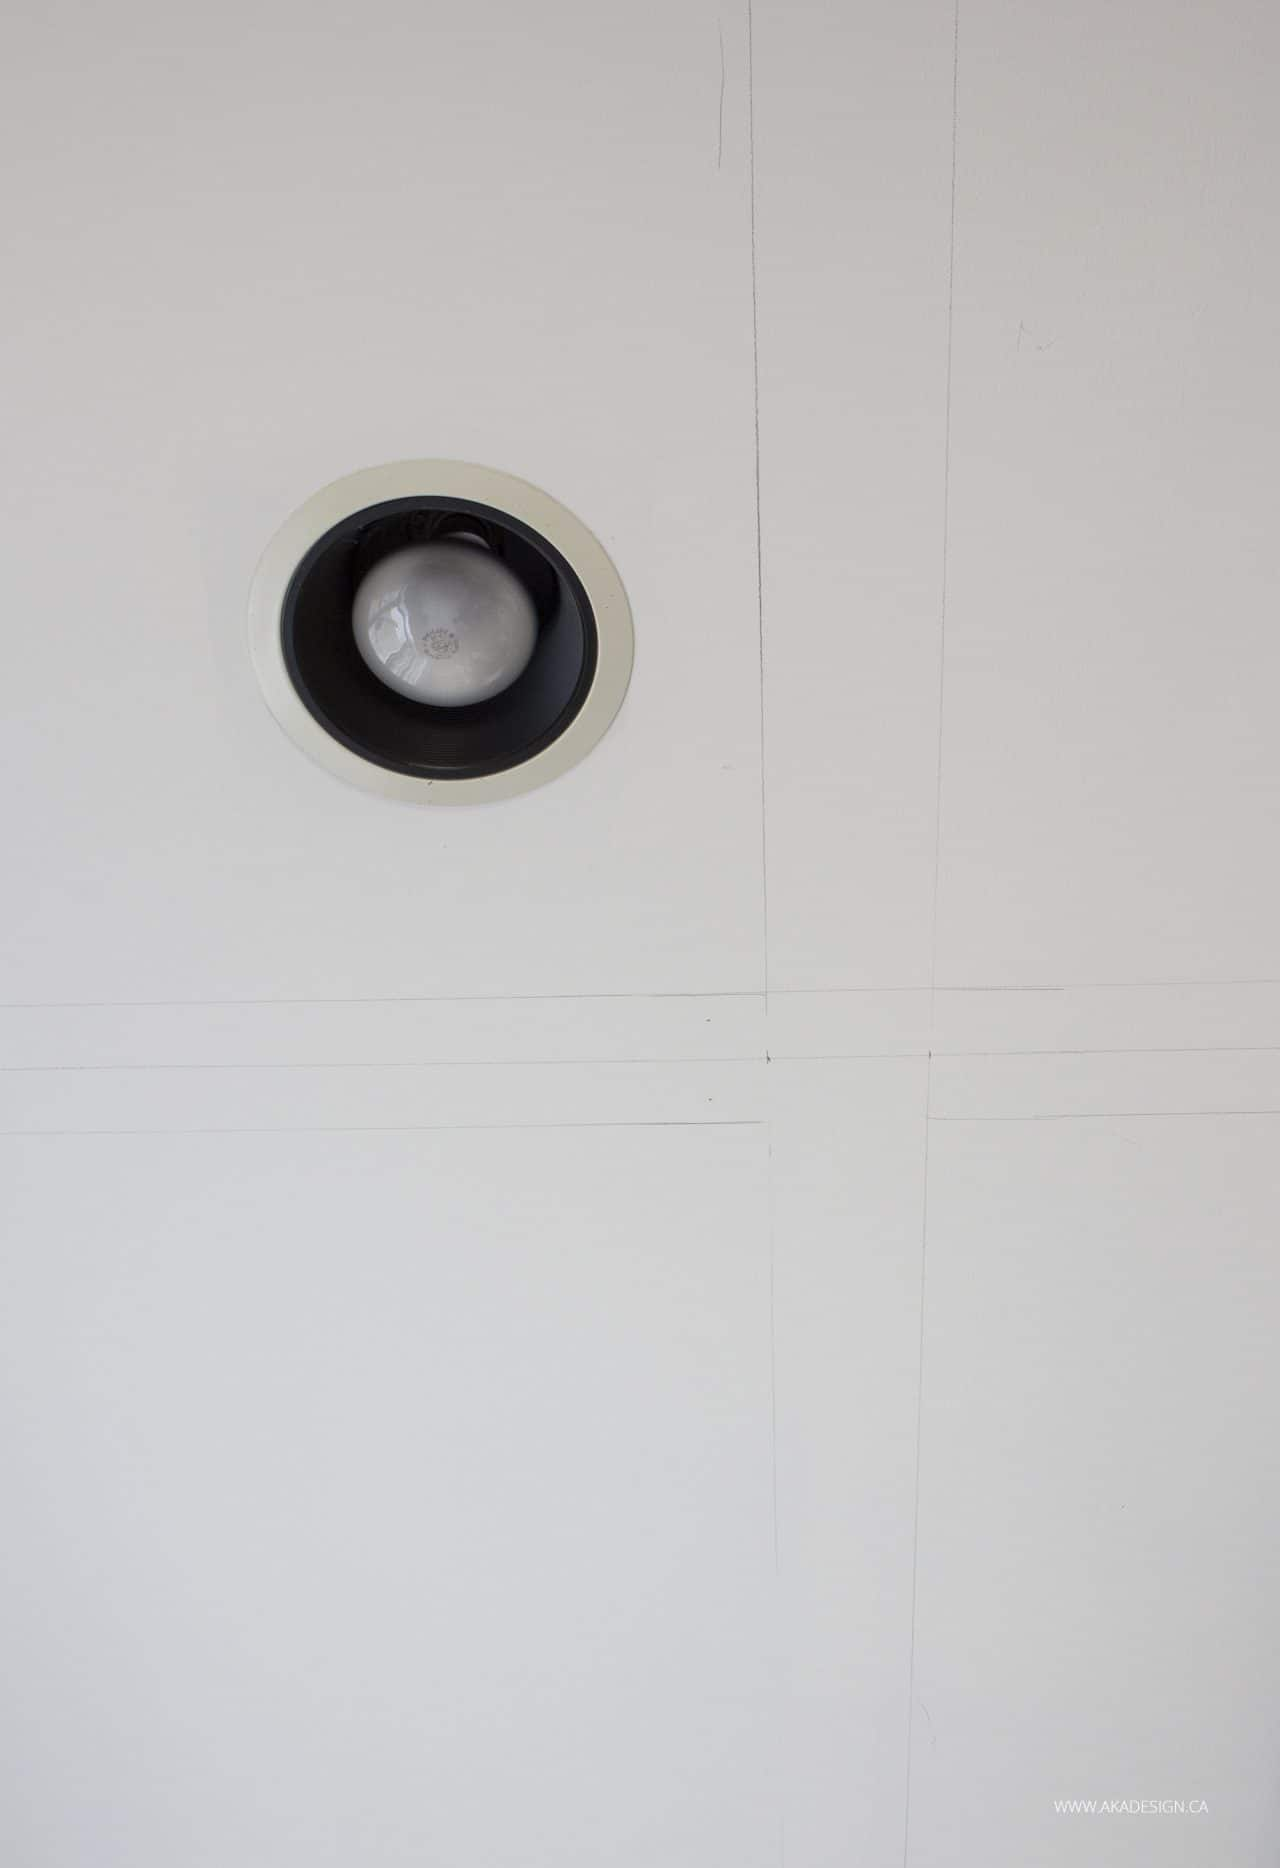 pencil marks on ceiling